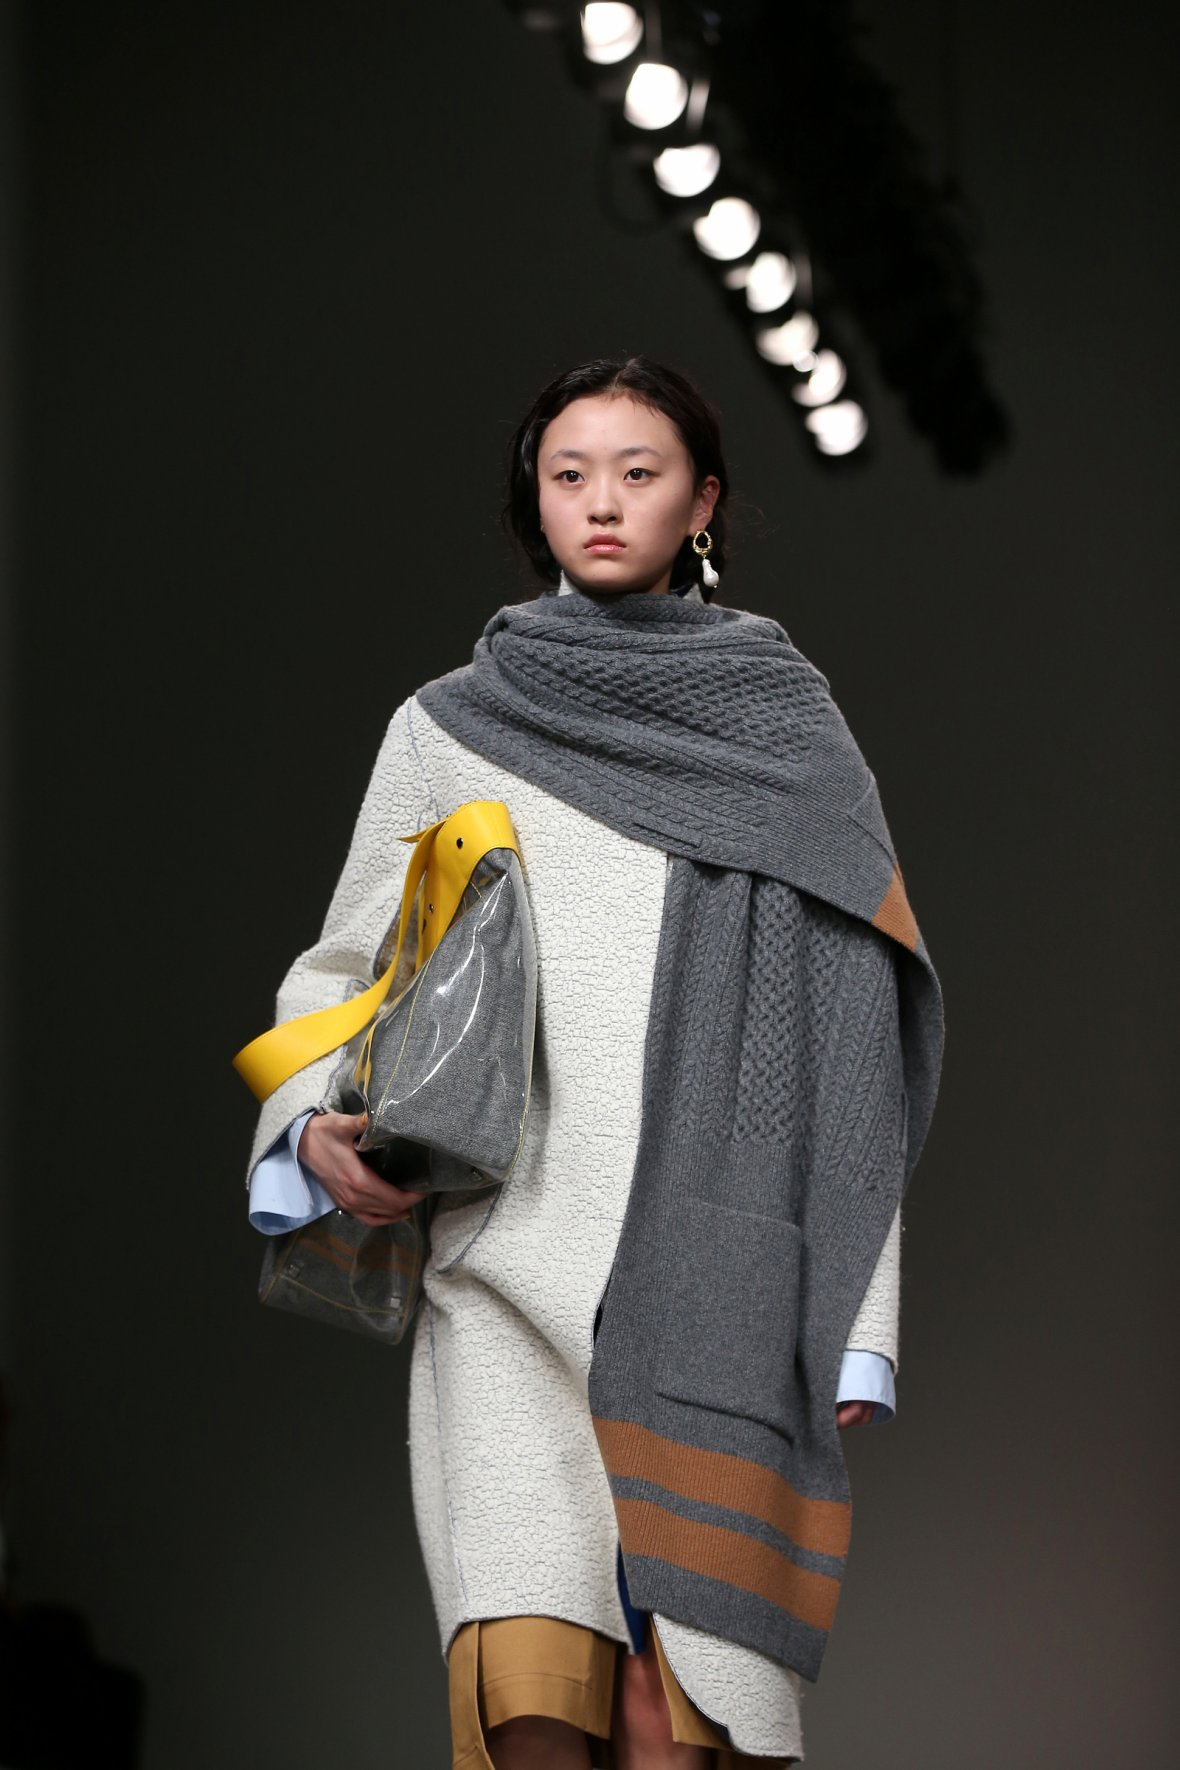 A model displays a creation during the Eudon Choi show at London Fashion Week, in London, Britain February 20, 2018.